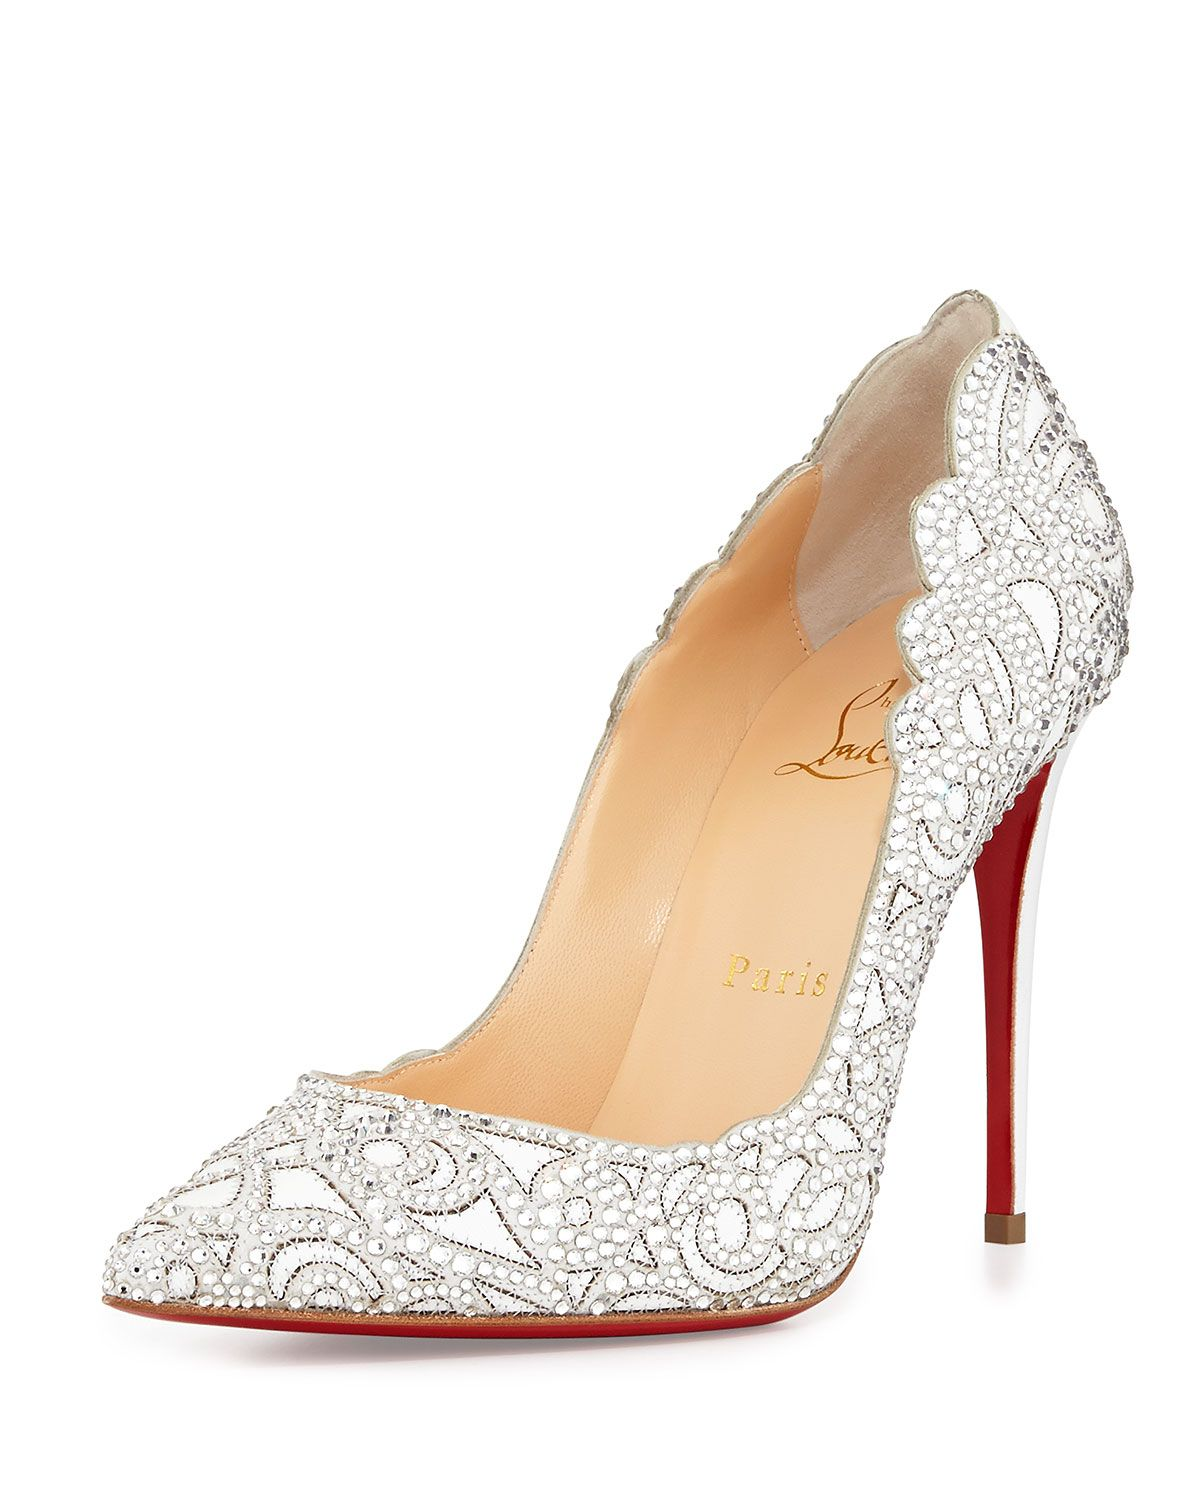 "Christian Louboutin Top Vague Crystal Mesh Pumps. Crystals swirl on the light yet structured mesh vamp of these classically glamorous point-toe pumps. Leather-covered heel, 4"" (100mm). Crystal-embellished mesh upper. Point toe. Leather lining. Signature red leather sole. Padded insole. Made in Italy"